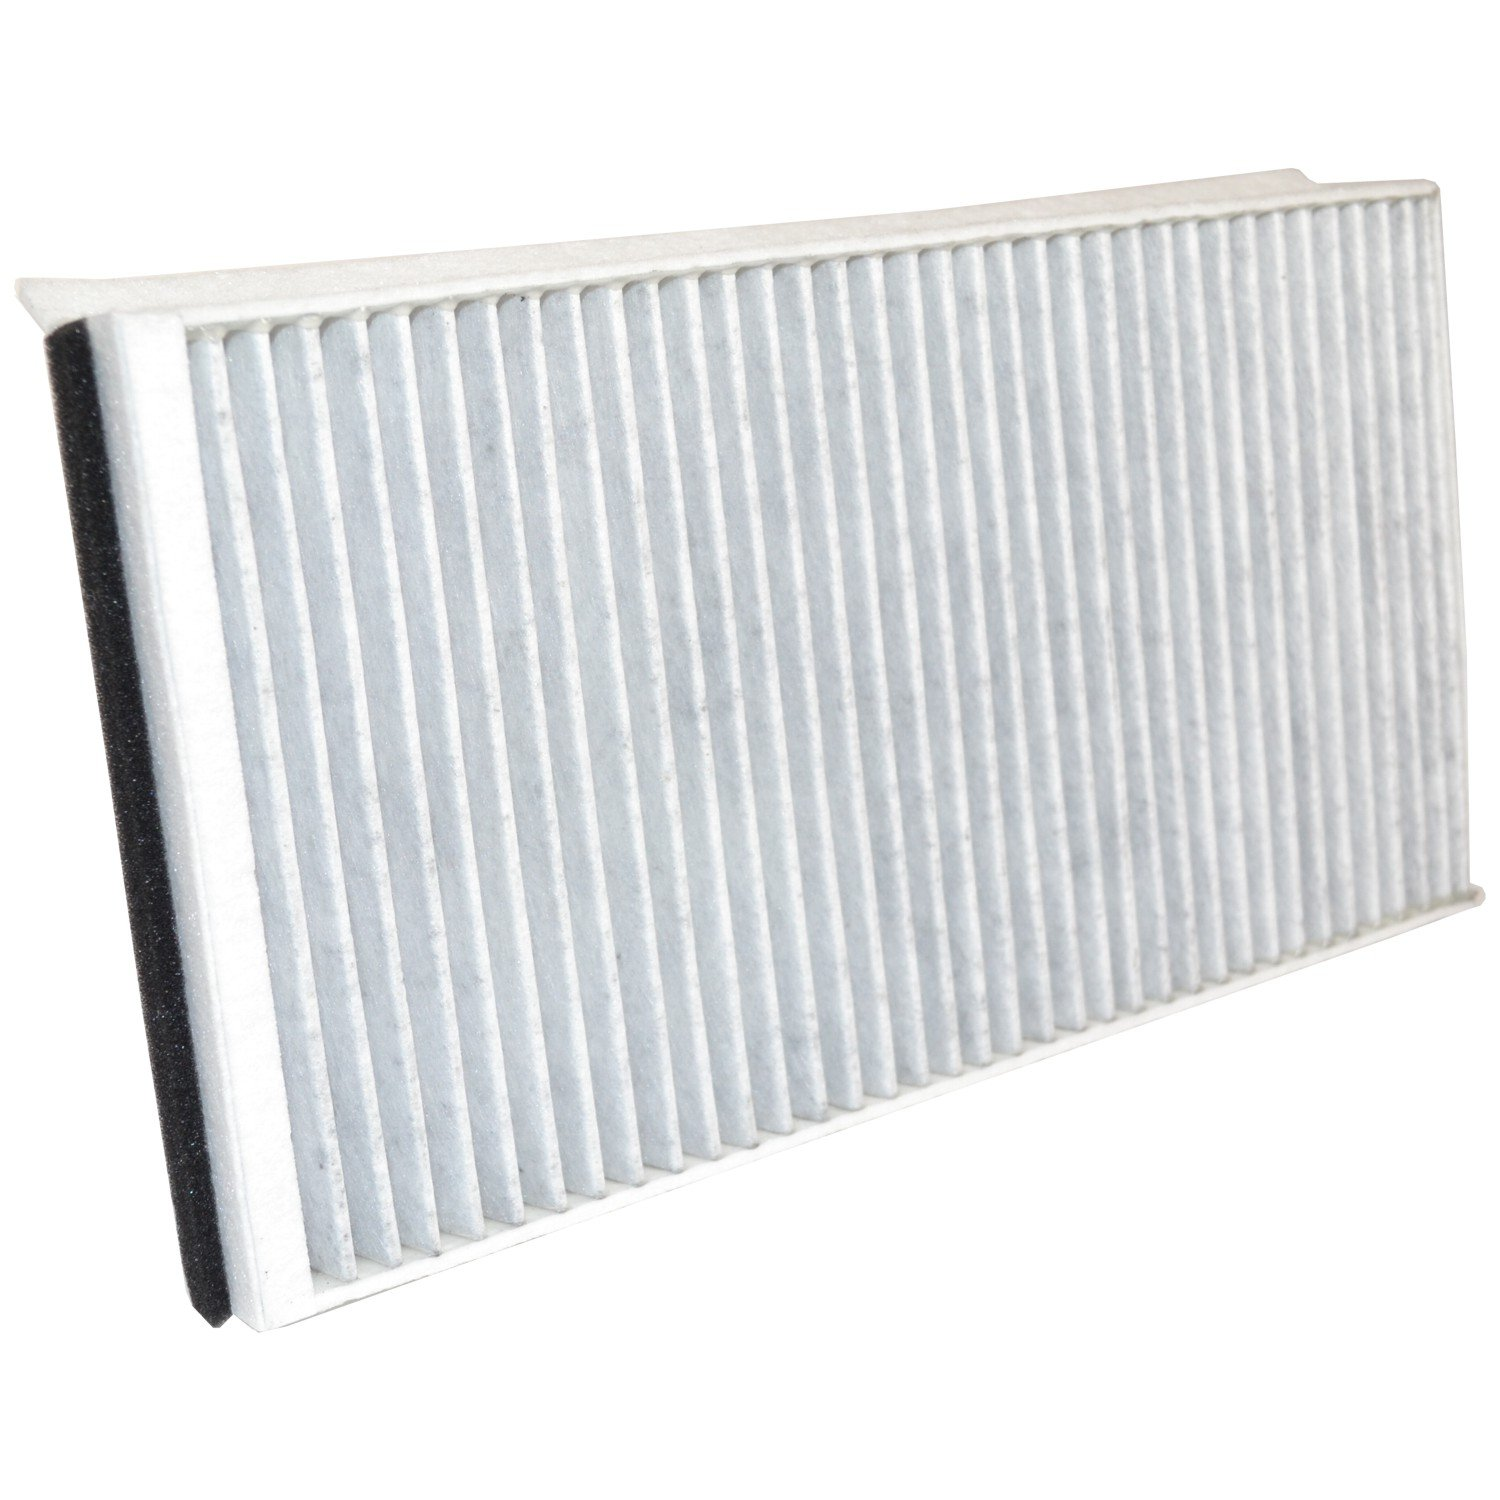 2006 2005 2-Pack HQRP Cabin Air Filter for BMW 530i 2004 2007